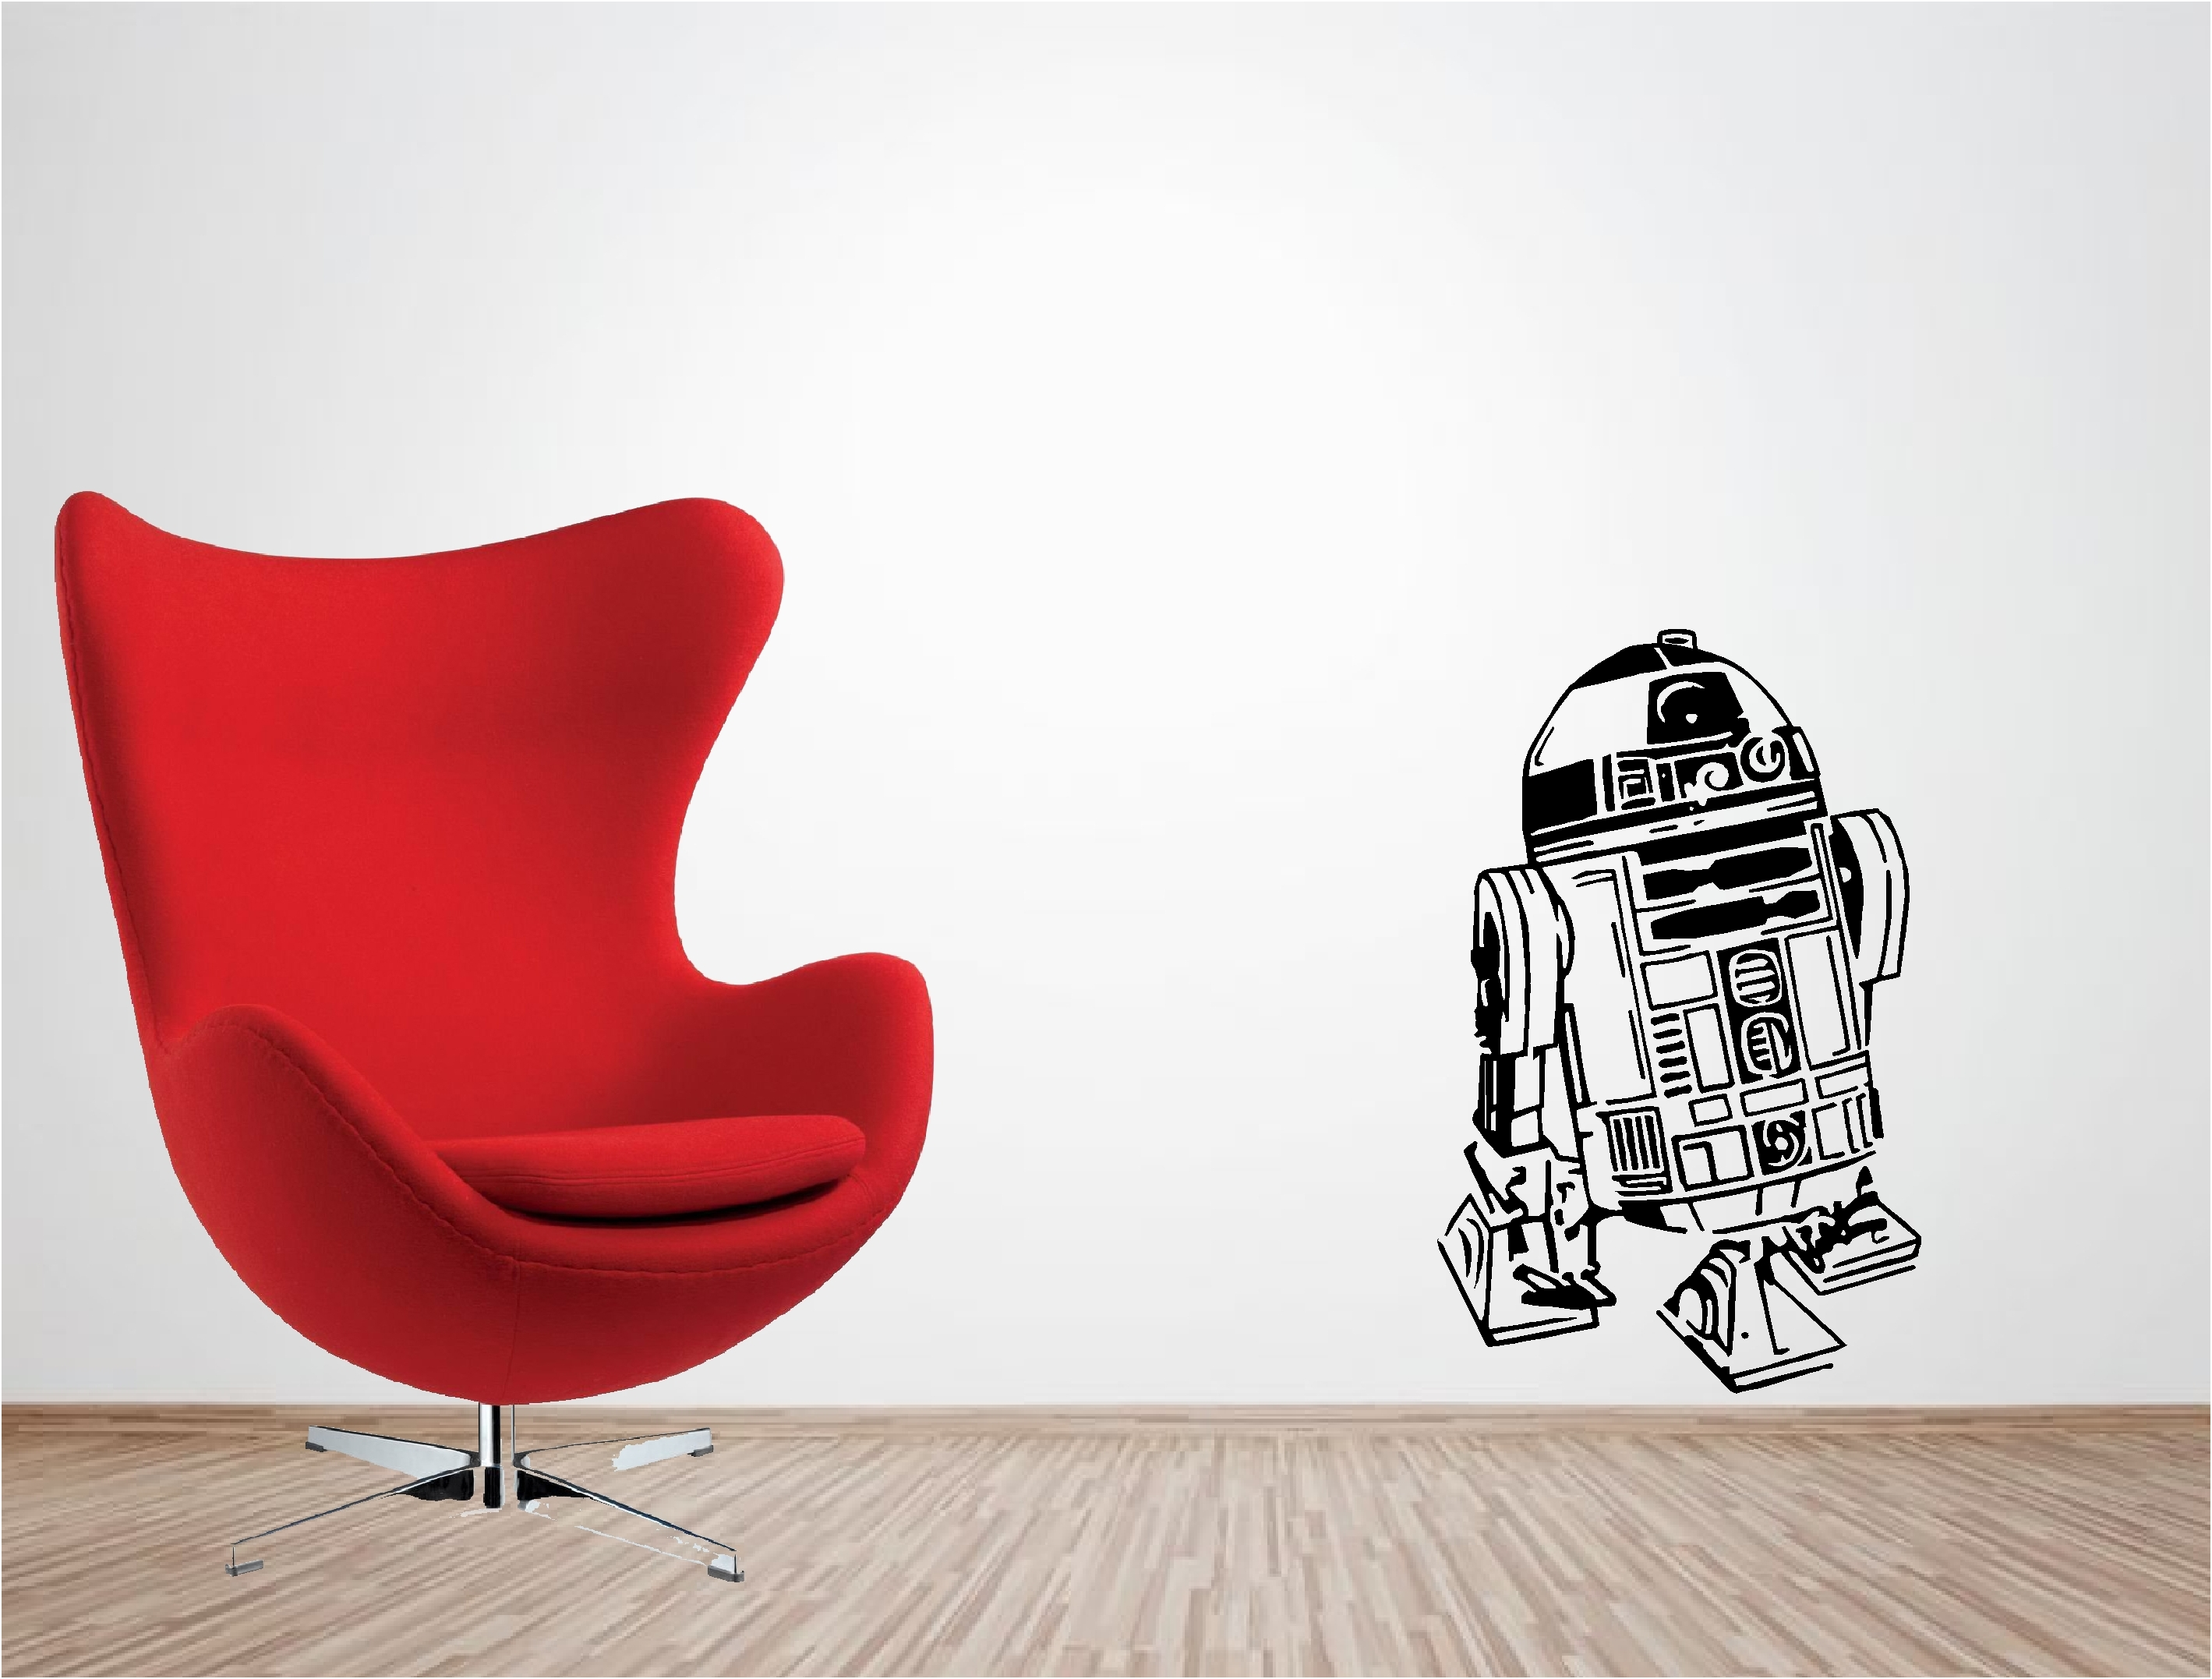 Star Wars R2d2 Art Star Wars R2d2 Wall Art